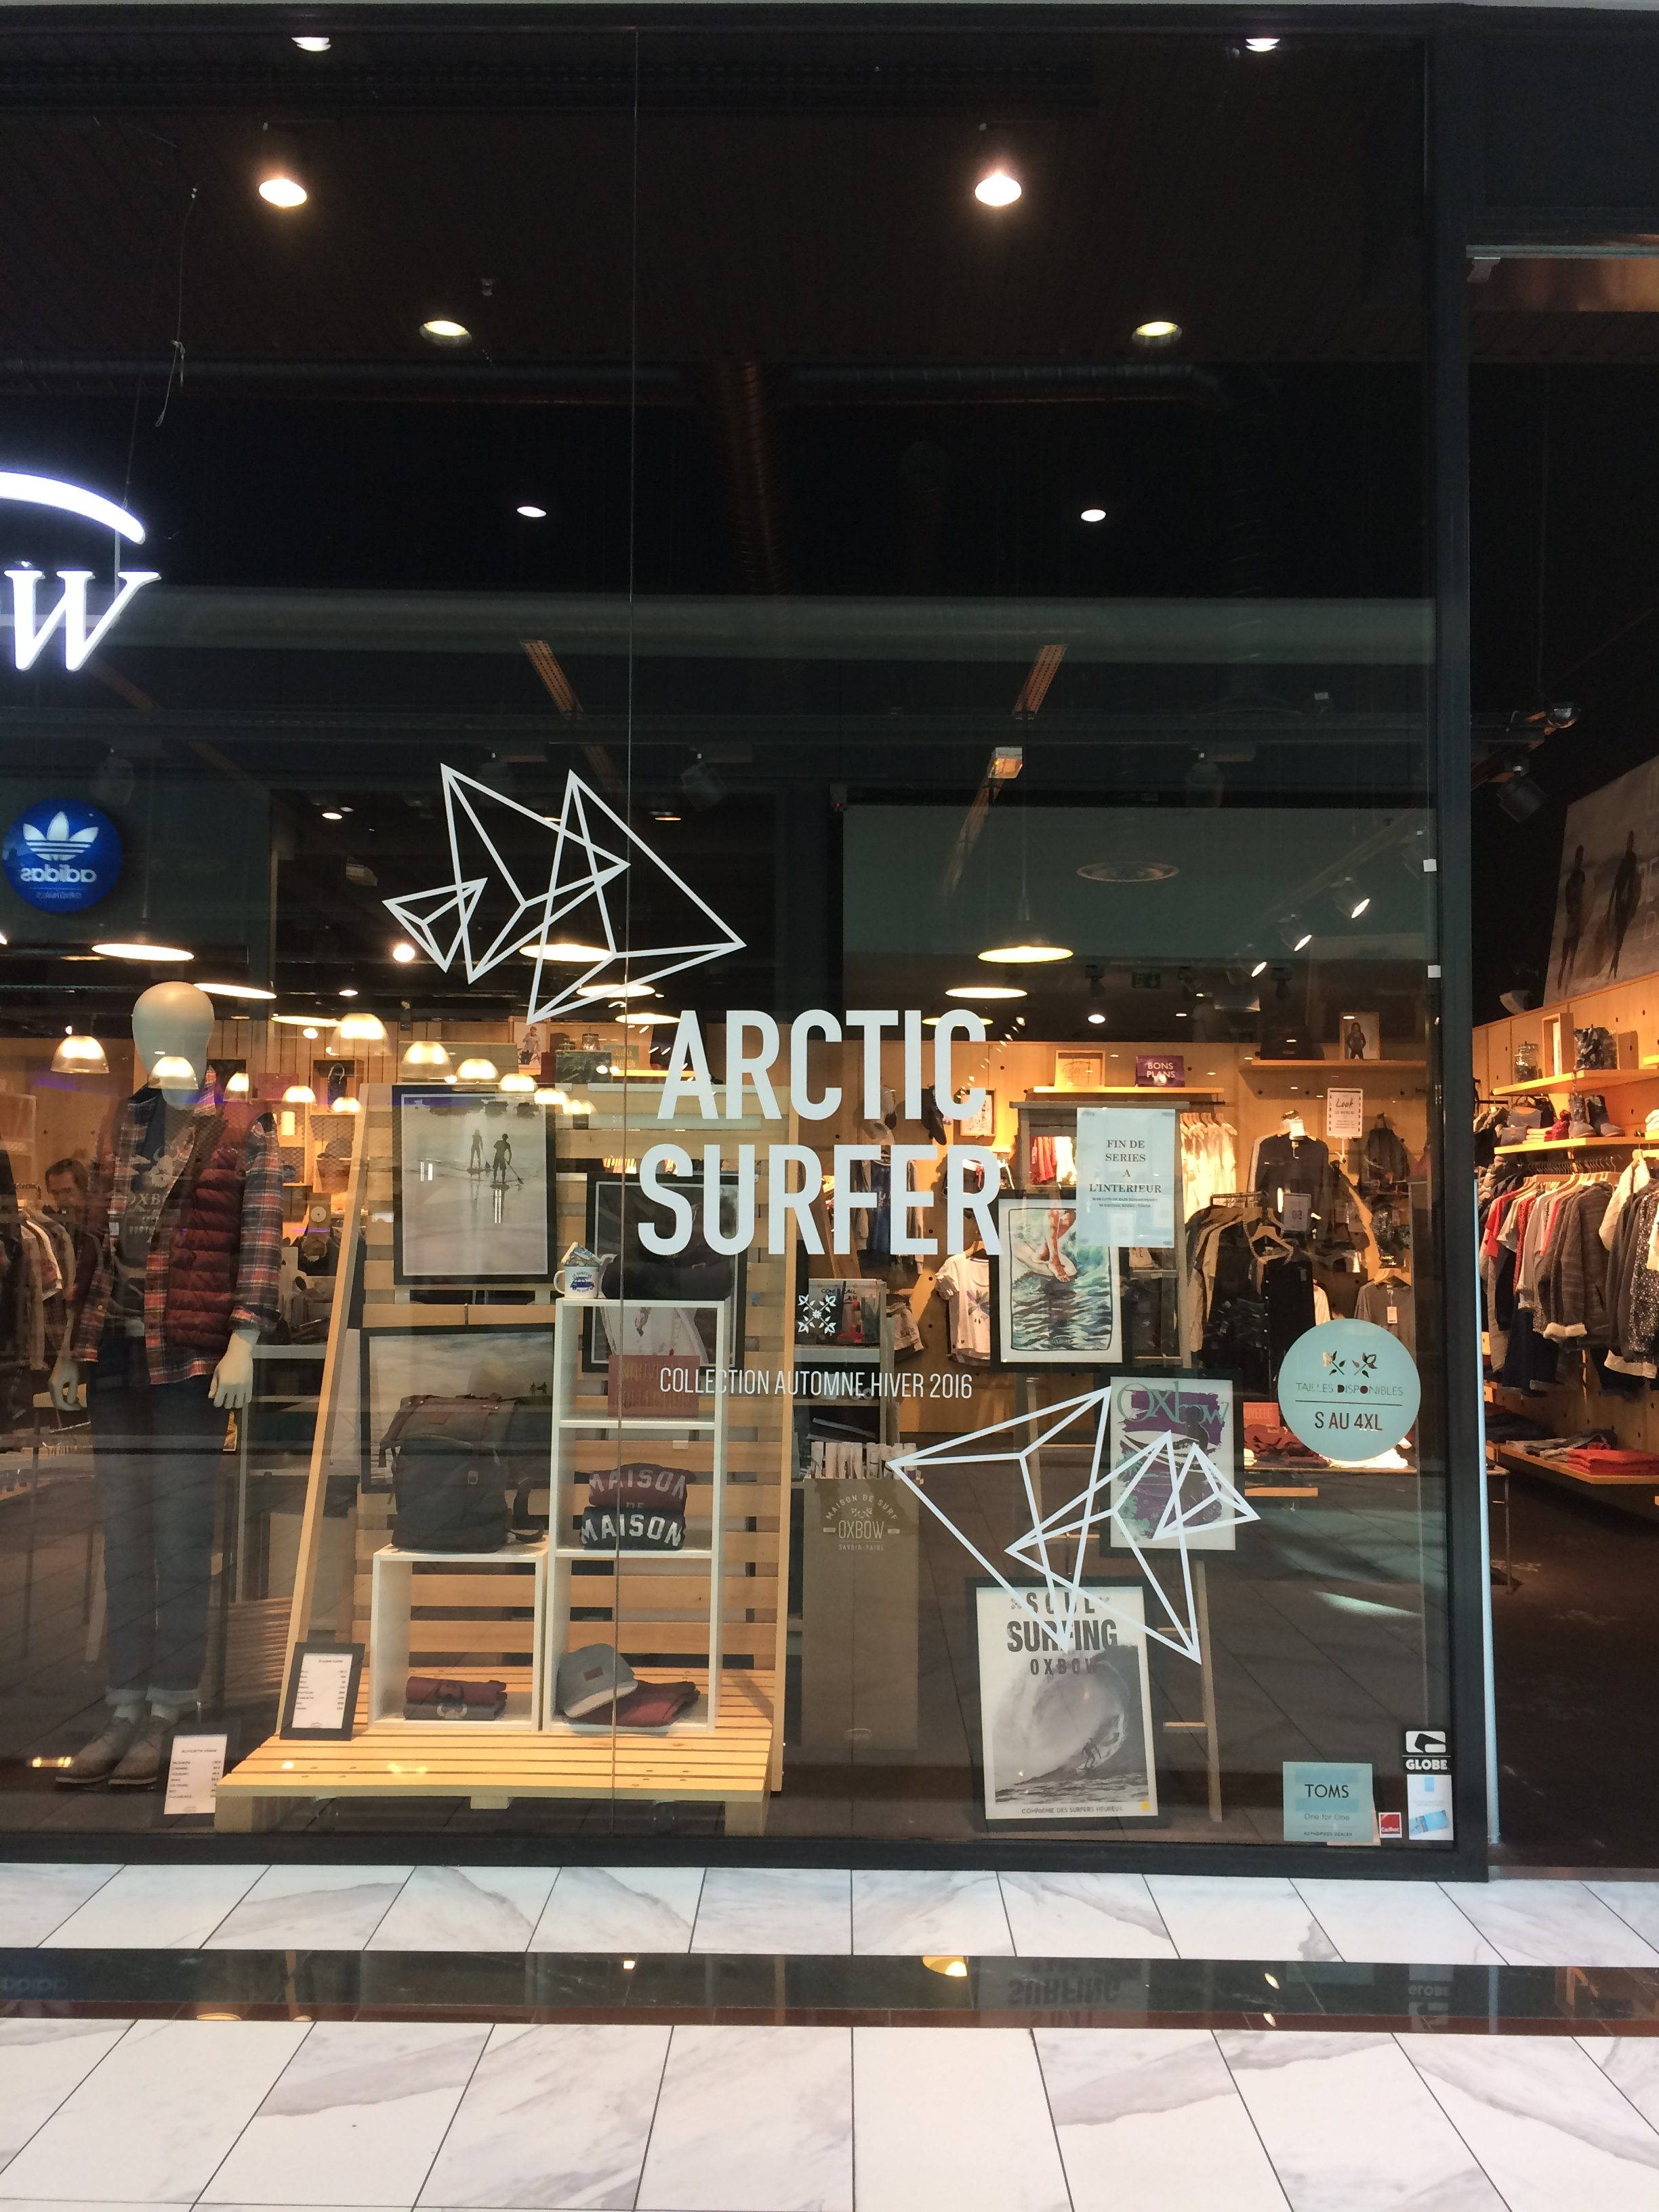 Arctic surfer Sticker vitrine